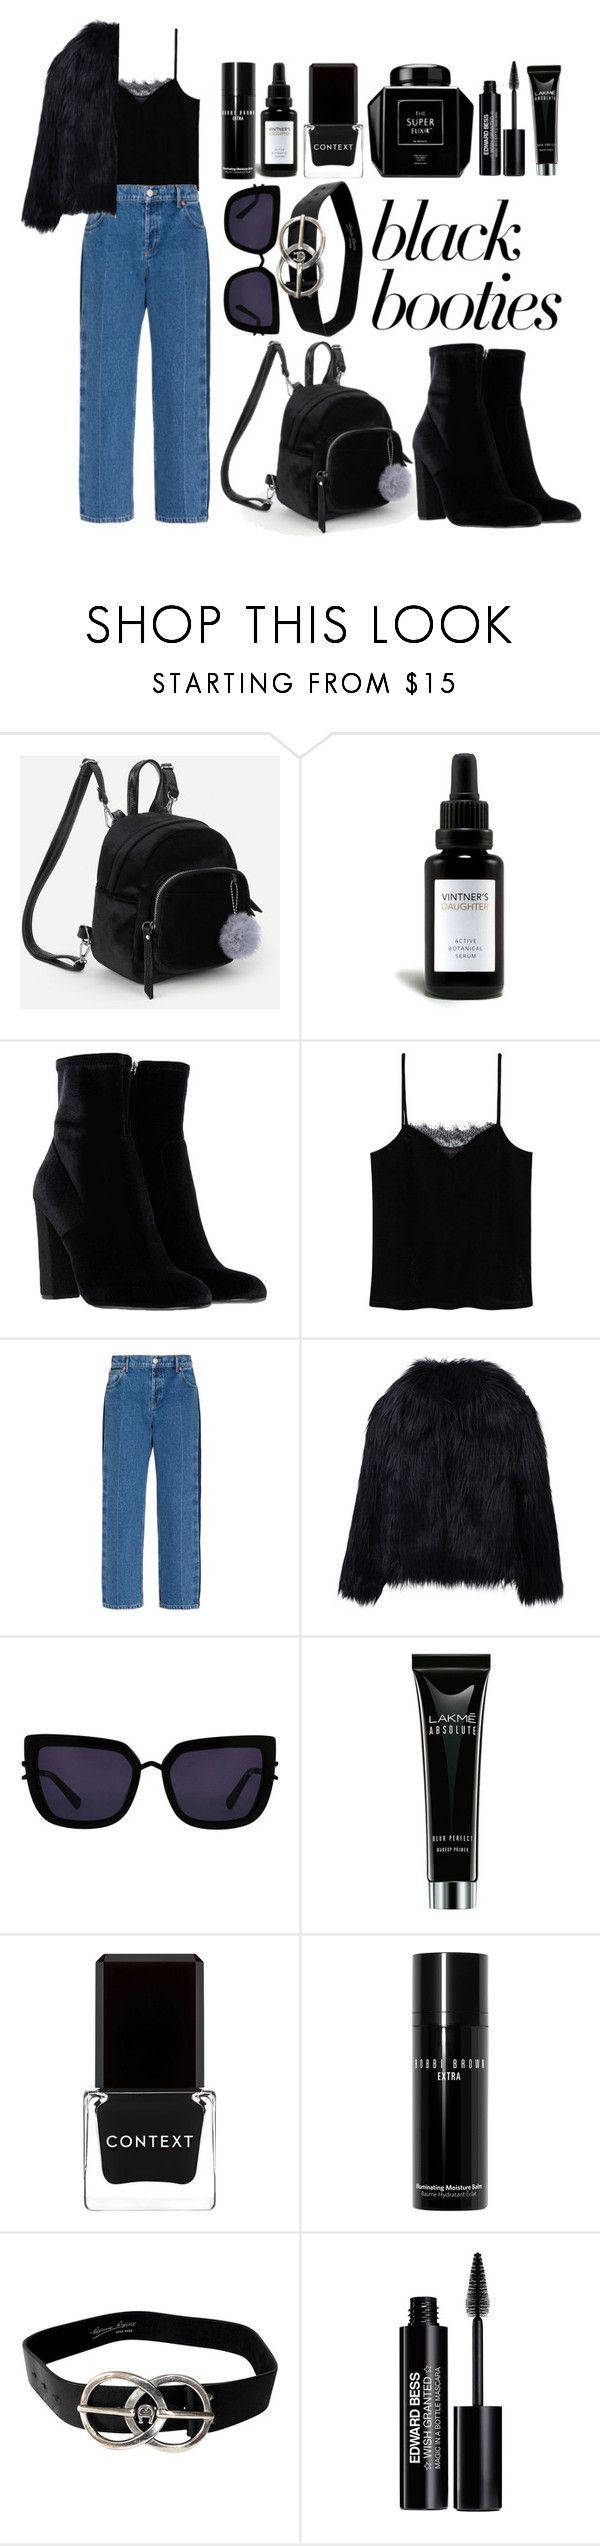 """black"" by thegoodmansdaughter ❤ liked on Polyvore featuring Vintner's Daughter, Steve Madden, MANGO, Balenciaga, WithChic, Kendall + Kylie, Context, Bobbi Brown Cosmetics, Etienne Aigner and Edward Bess"